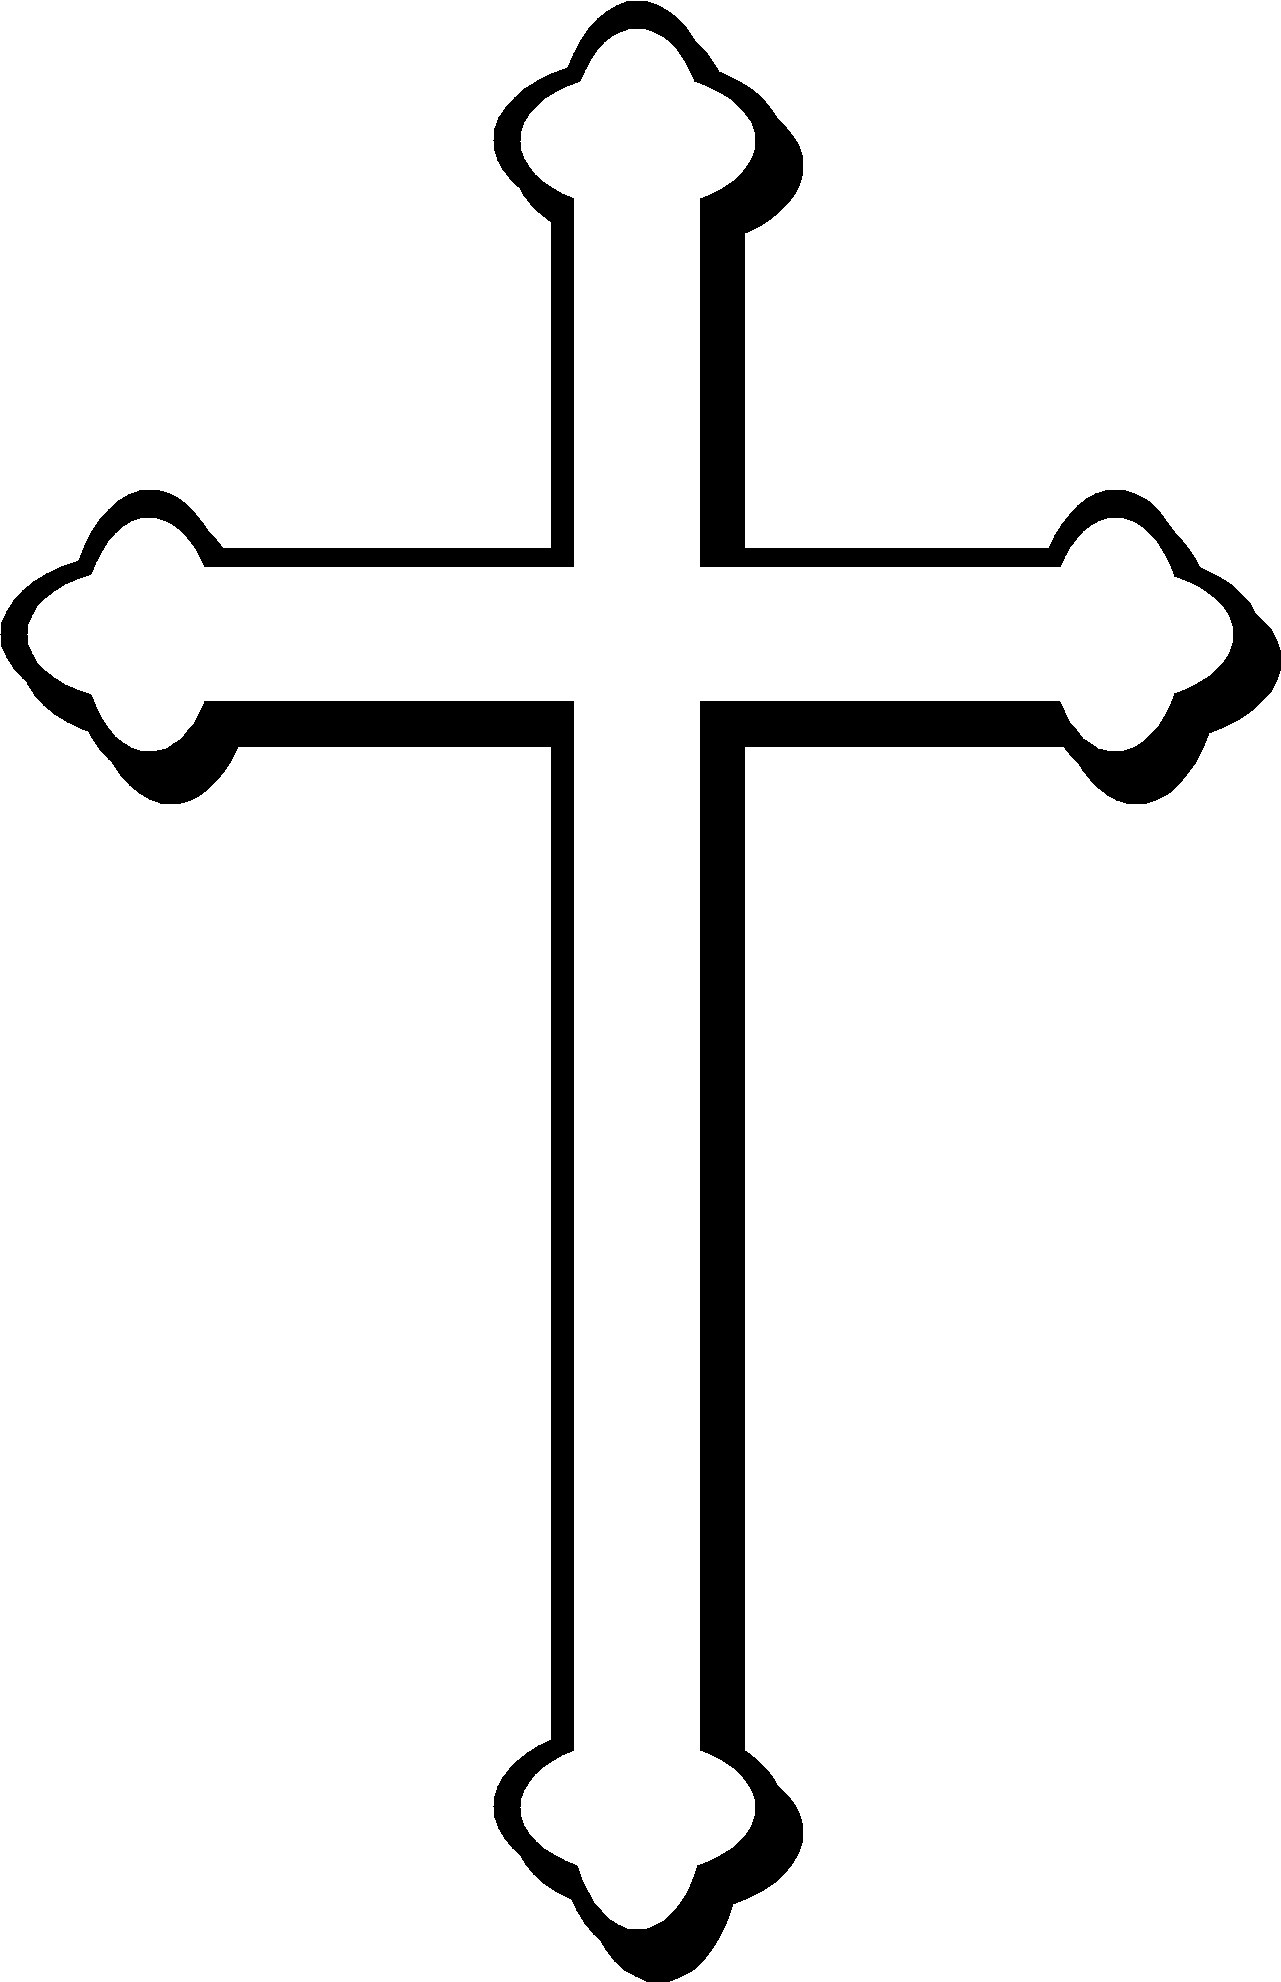 Simple Cross Line Art : Christian cross clip art designs clipart panda free